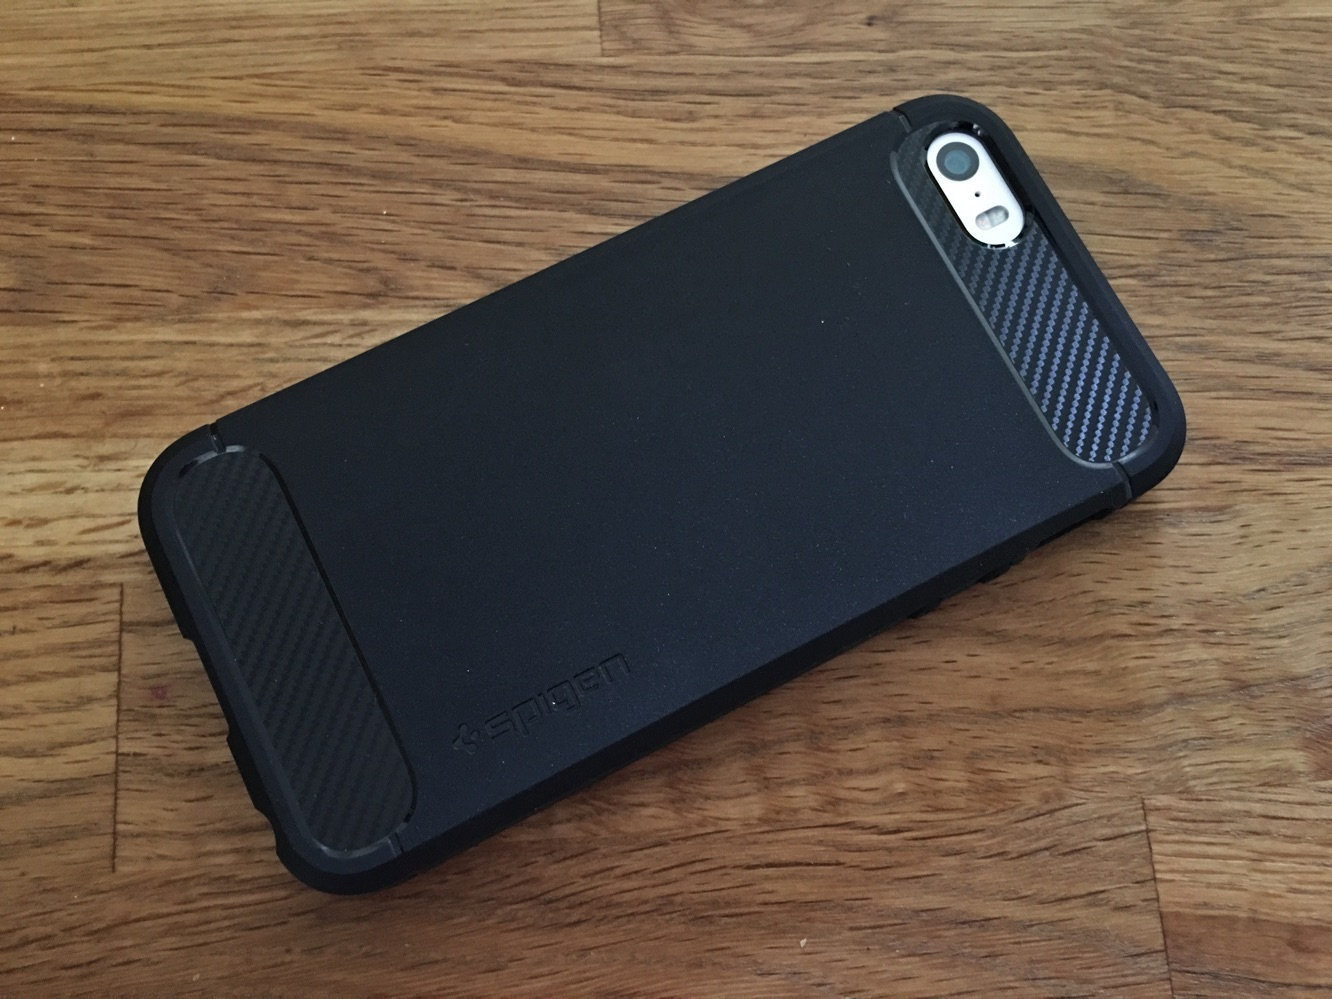 ... : Spigen Rugged Armor, Style Armor + Wallet S for iPhone SE : iLounge